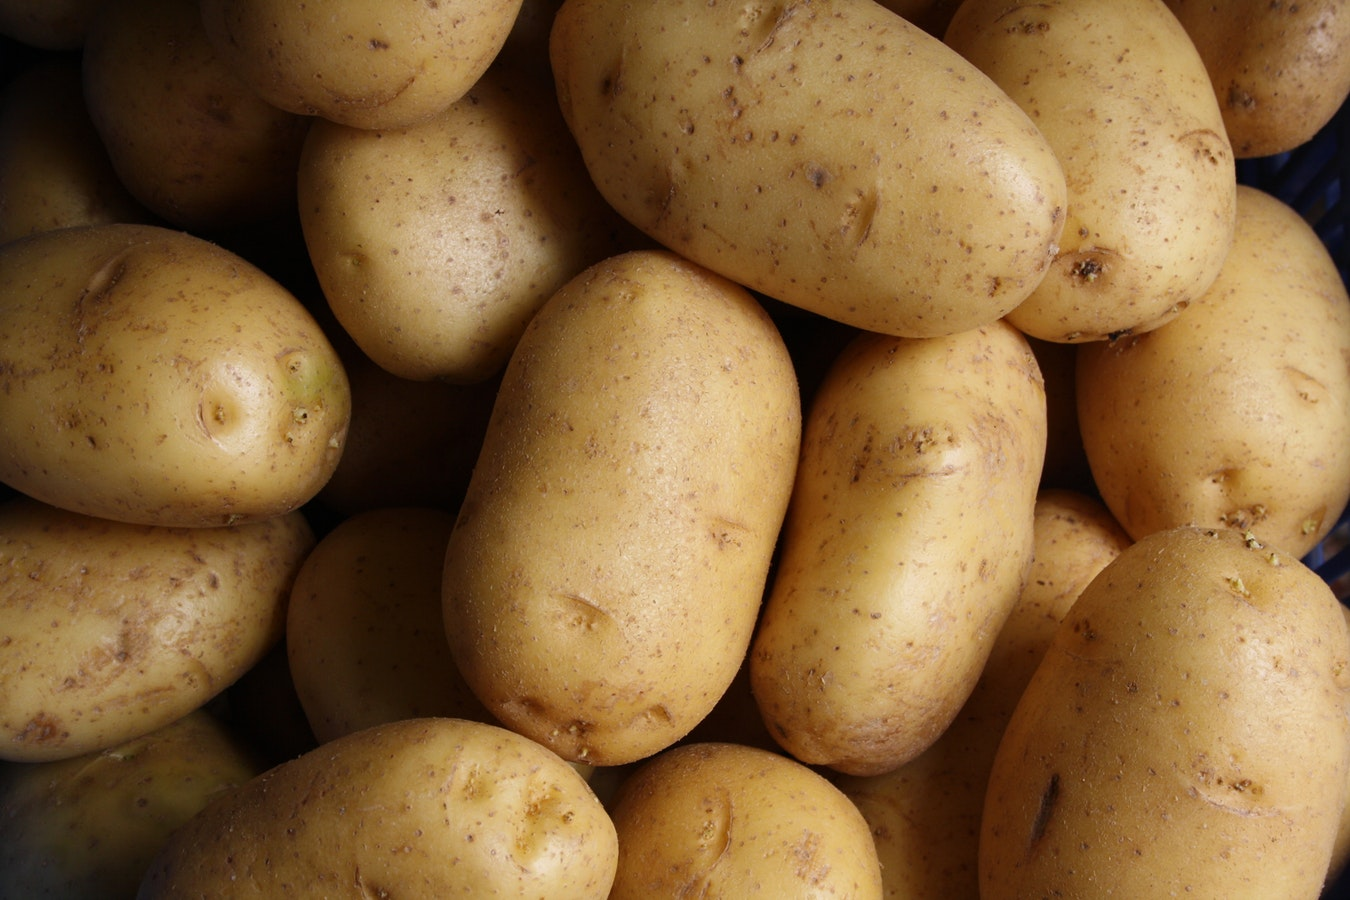 A close up of potatoes. Potatoes are a great source of Vitamin B for seniors